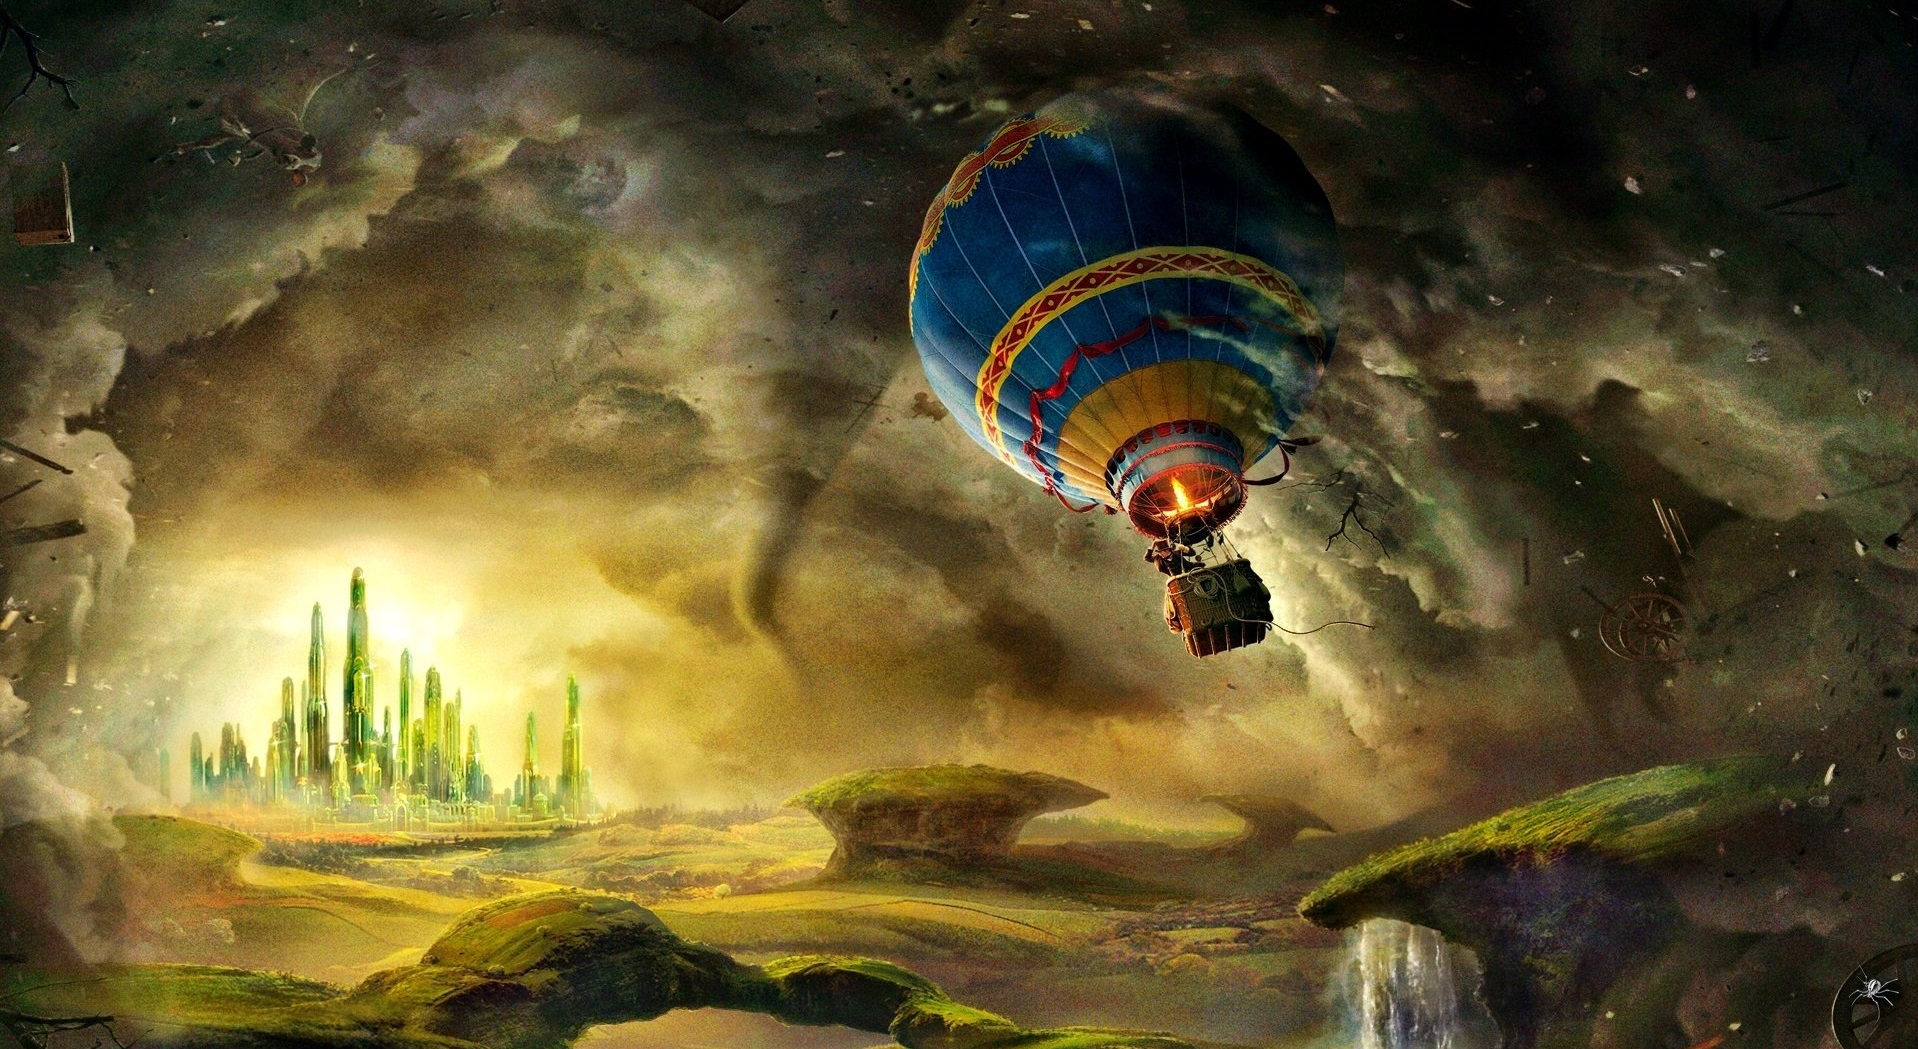 Balloon journey to Oz in Oz: The Great and Powerful (2013)